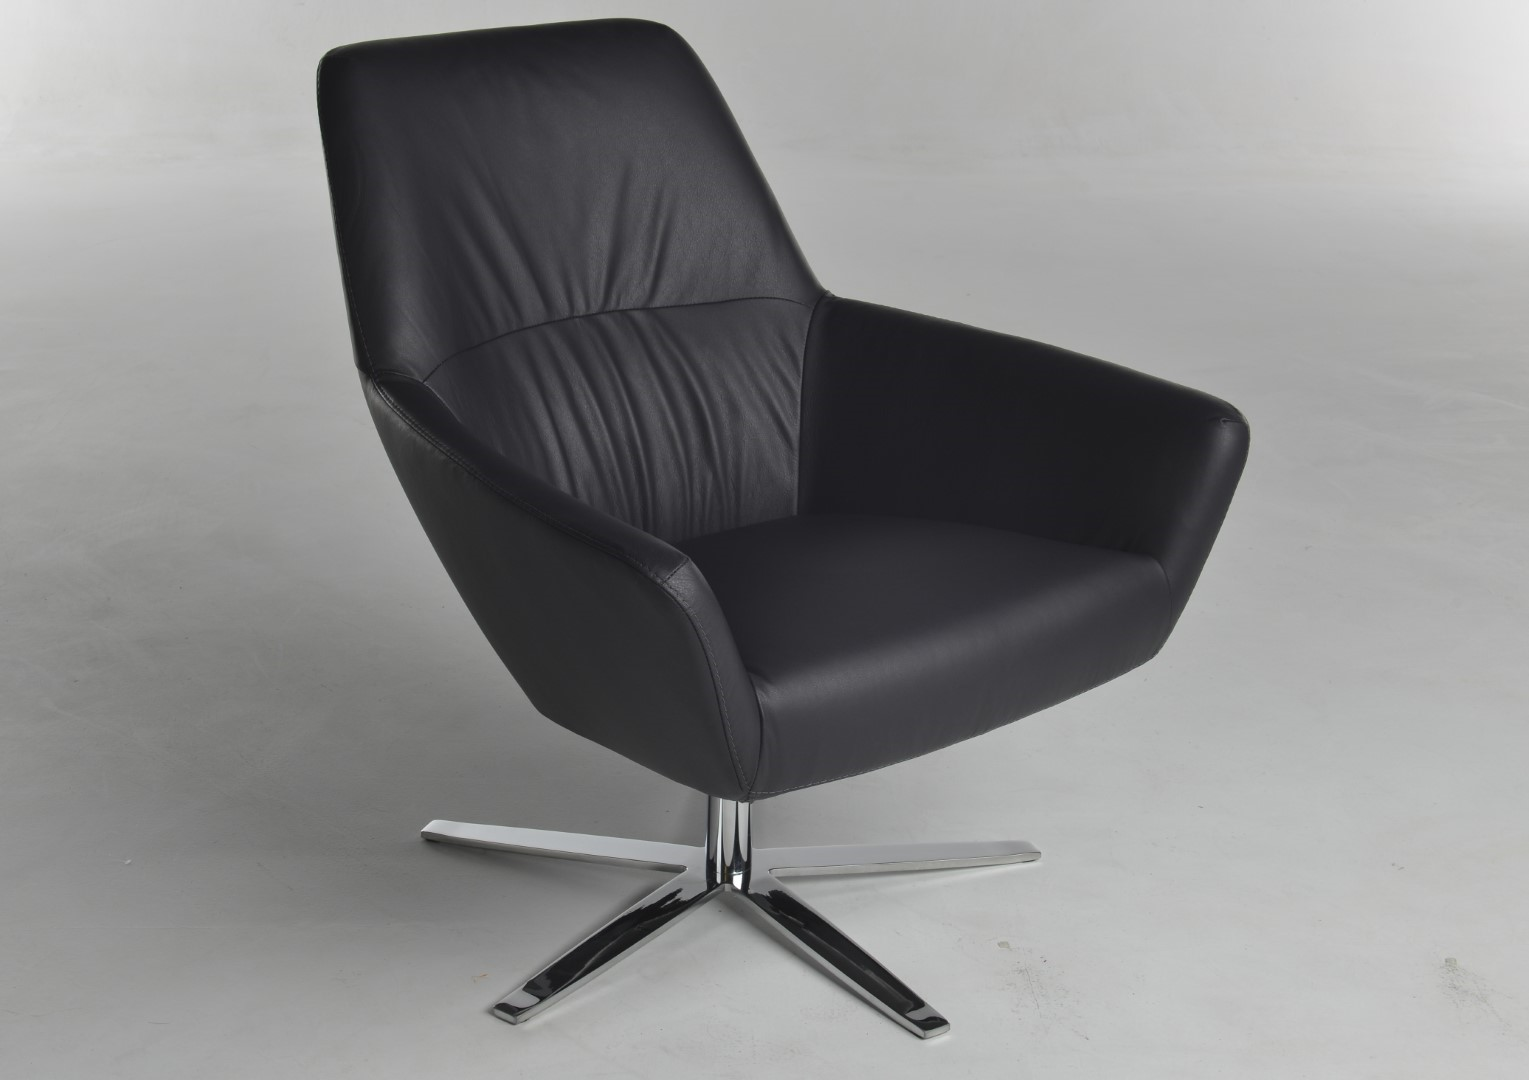 Paarse Draai Fauteuil.Zyba Fauteuil Restleder Donker Paars Draaipoot Glans Chroom